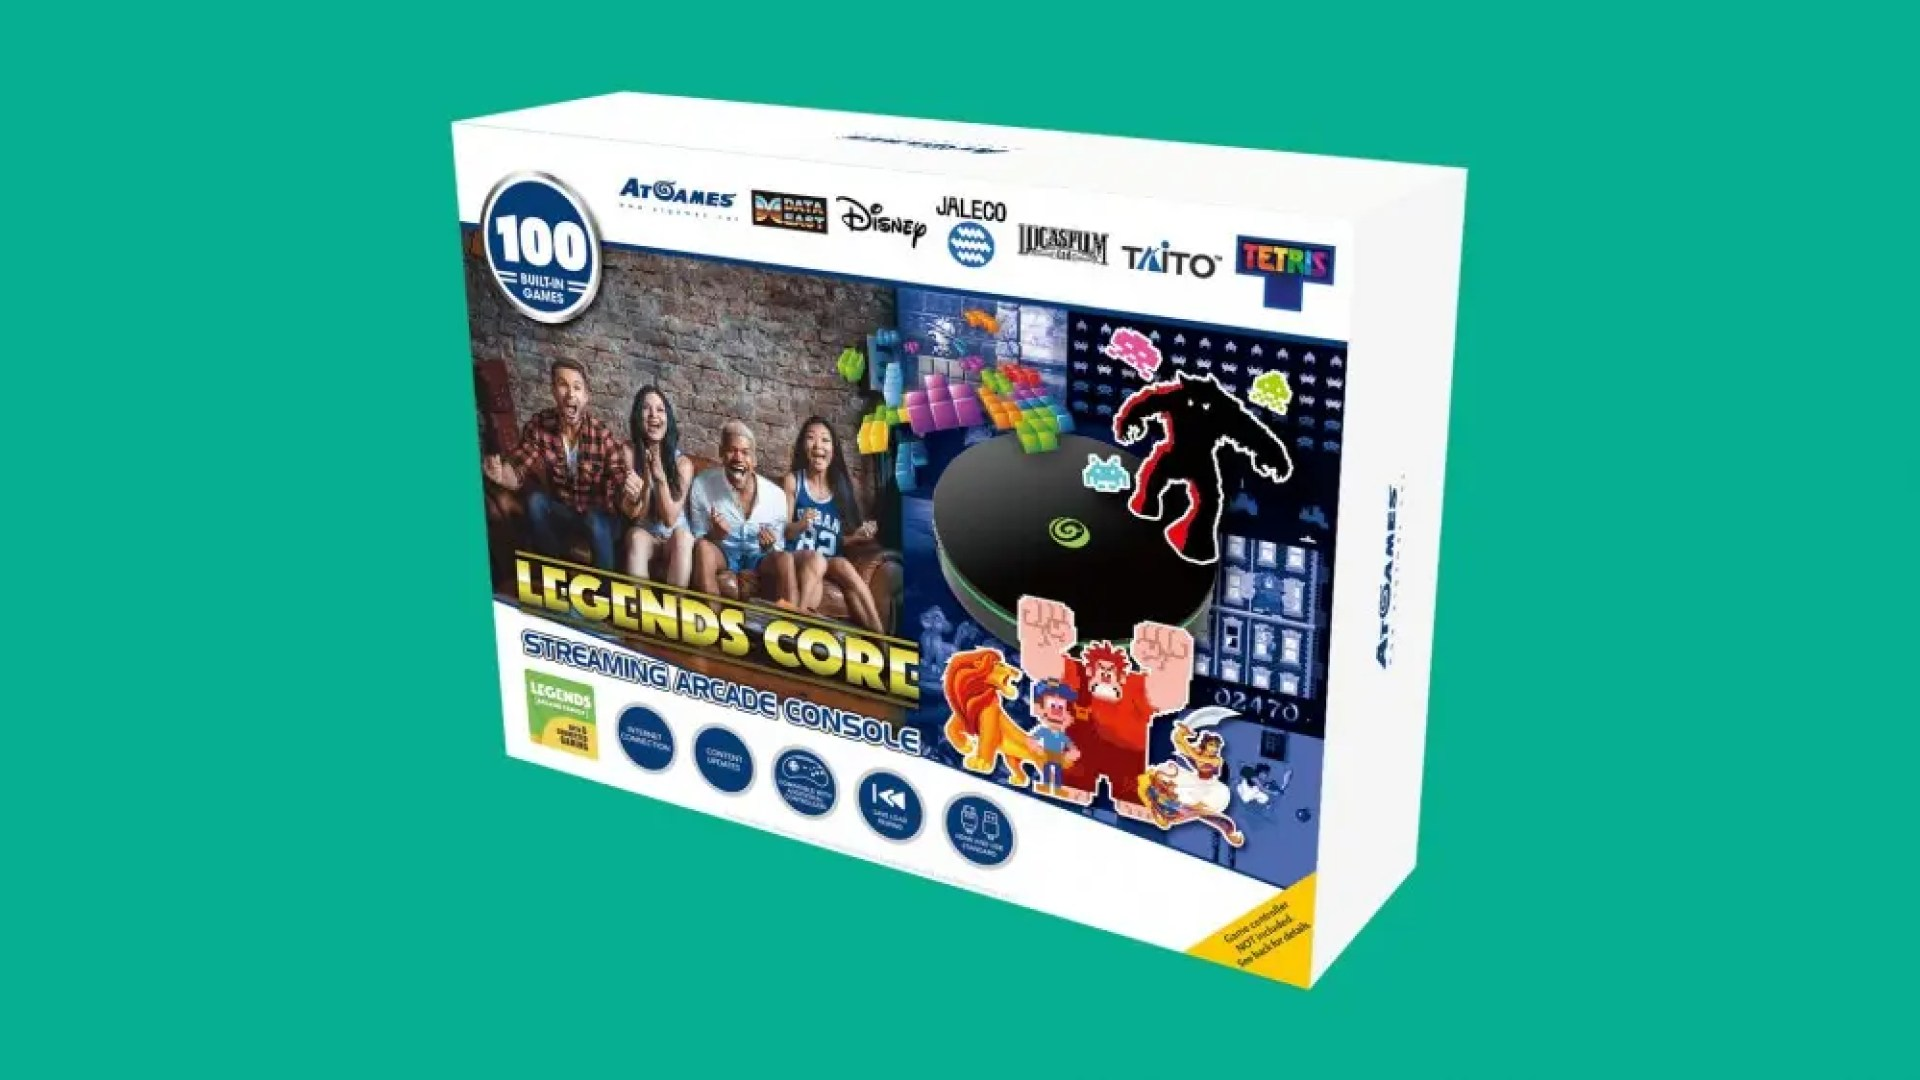 The AtGames Legends Core box showing 100 games.